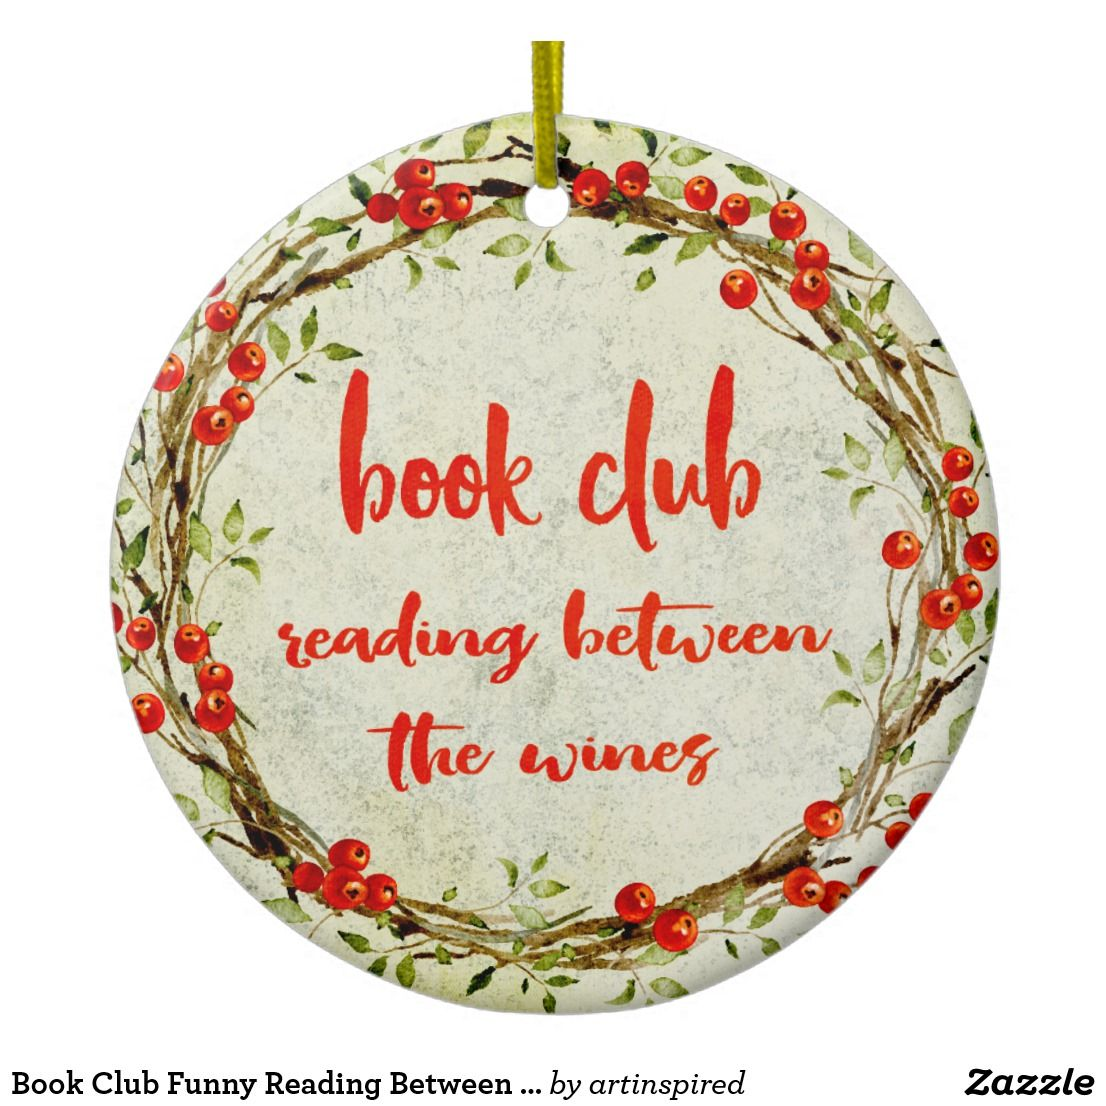 Book Club Funny Reading Between the Wines Holiday Ceramic ...